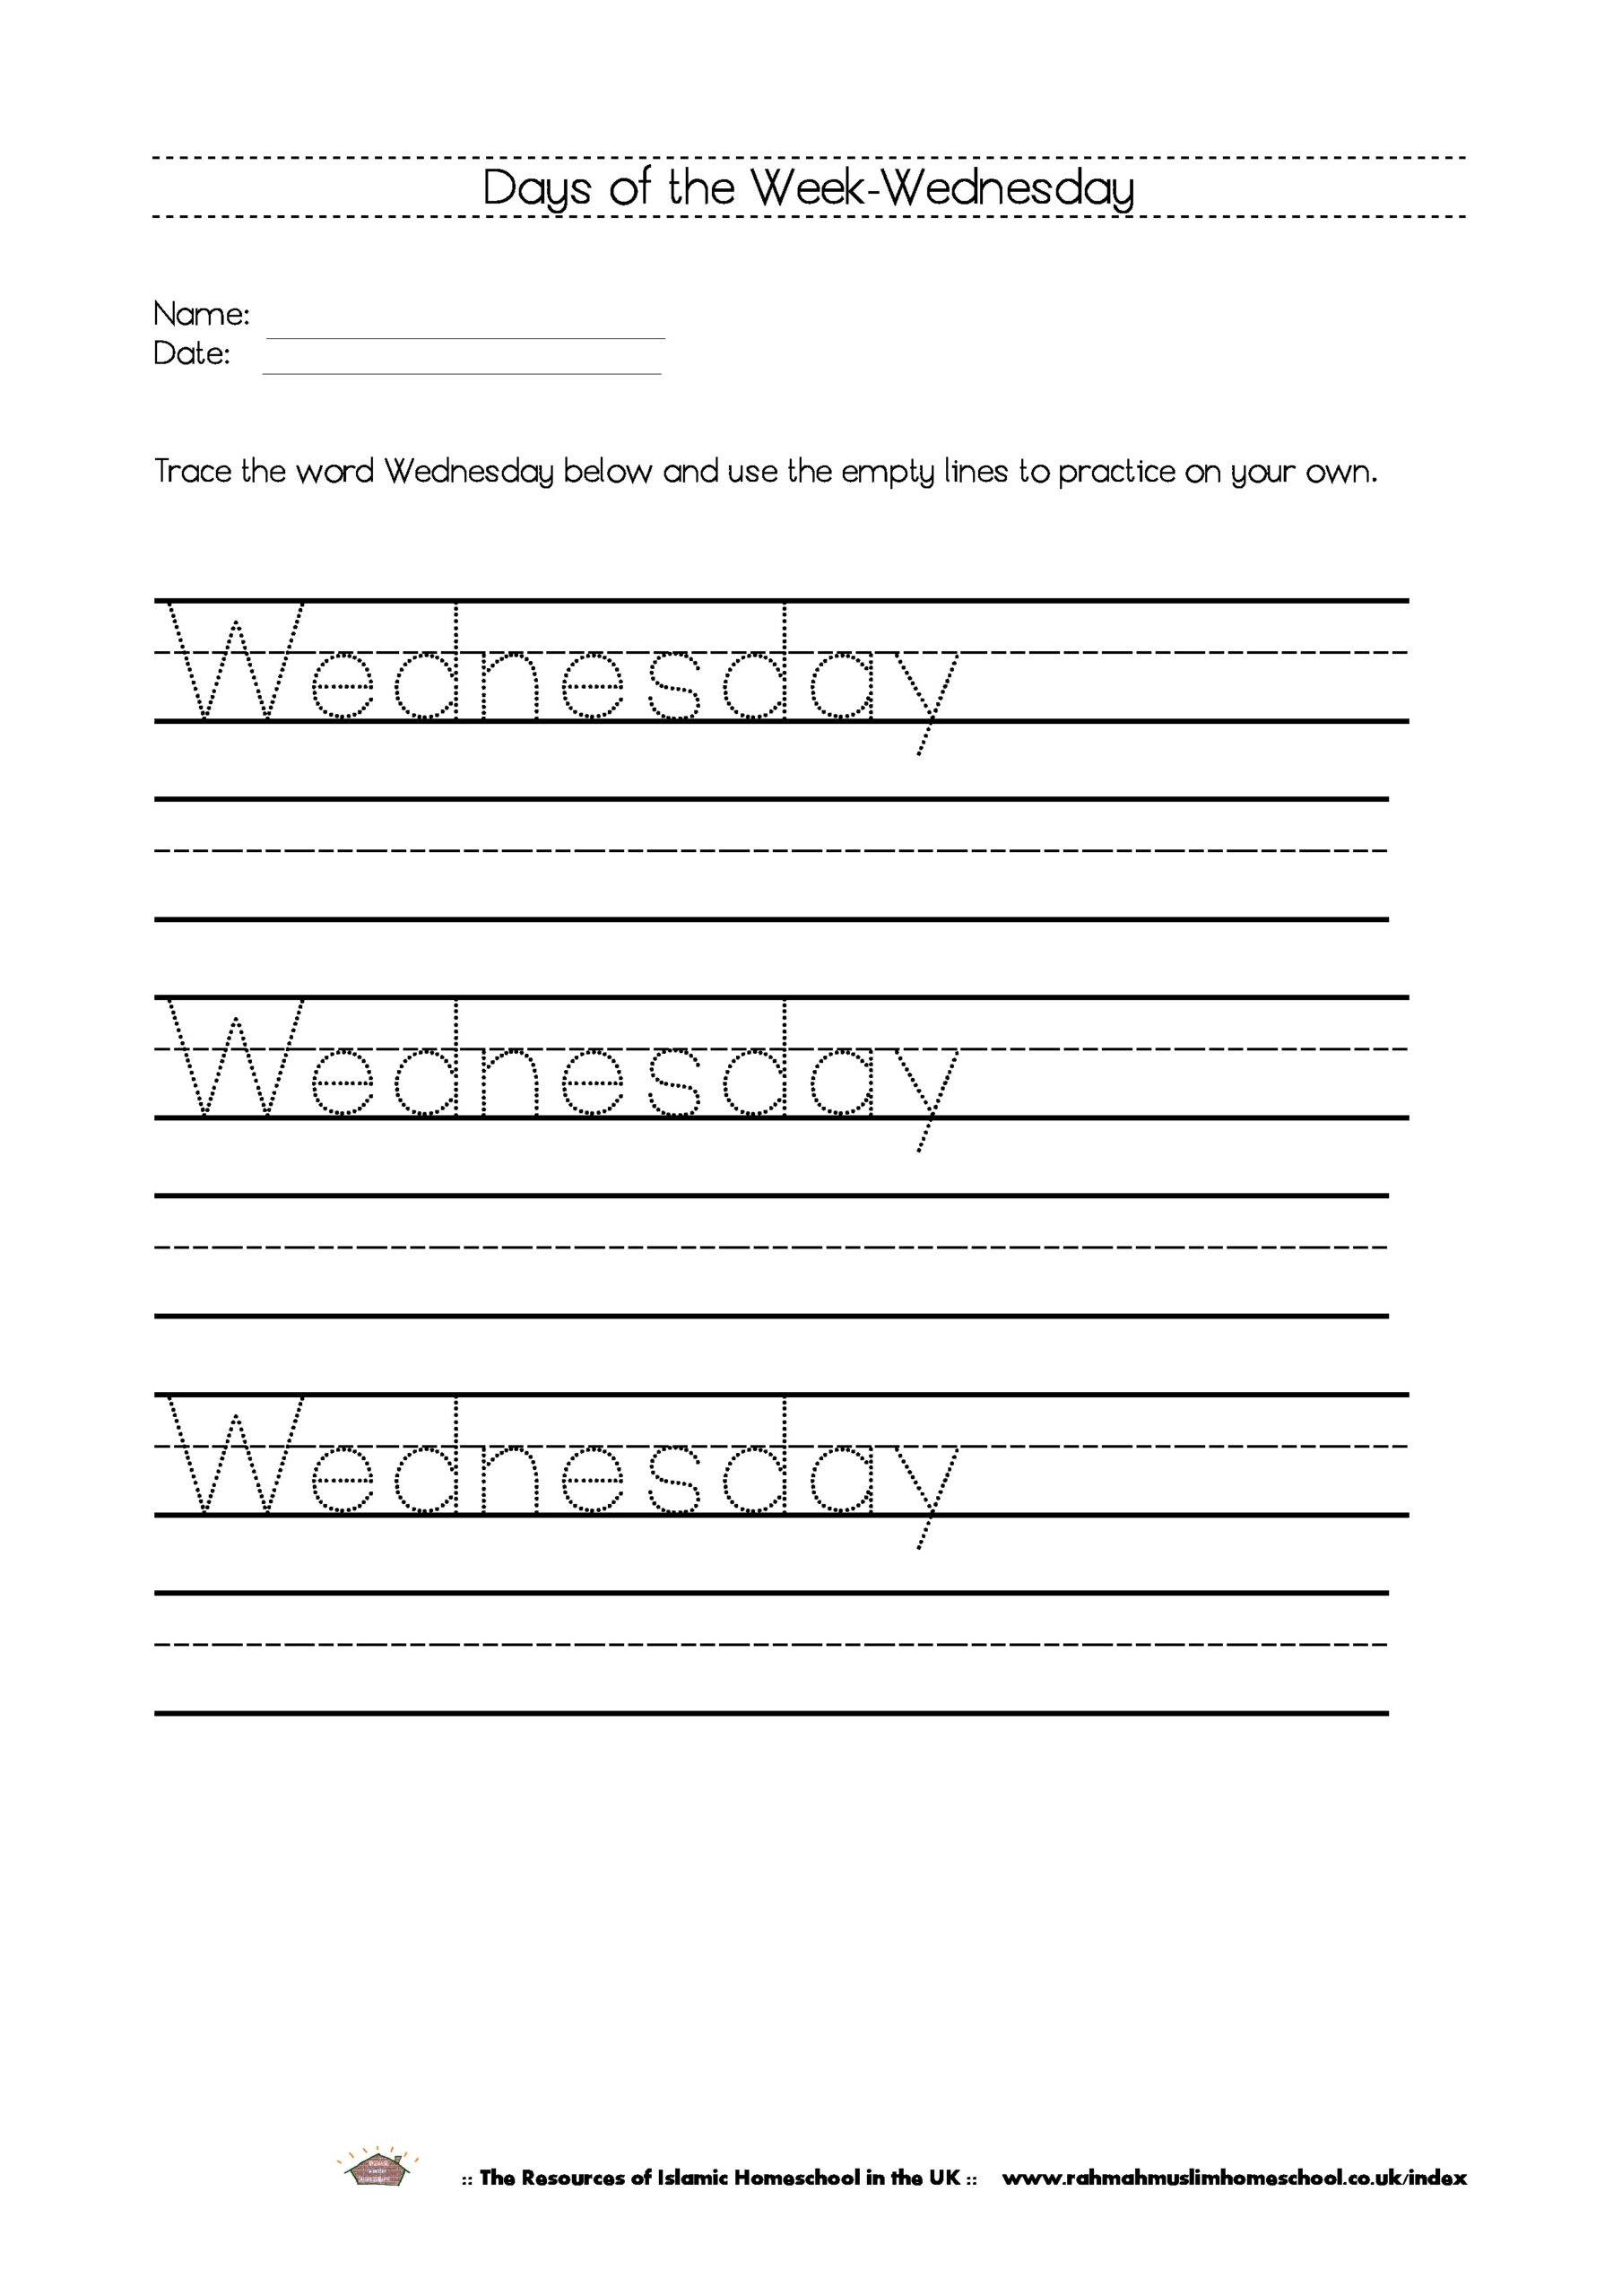 Free Printable Days Of The Week Workbook And Poster | The